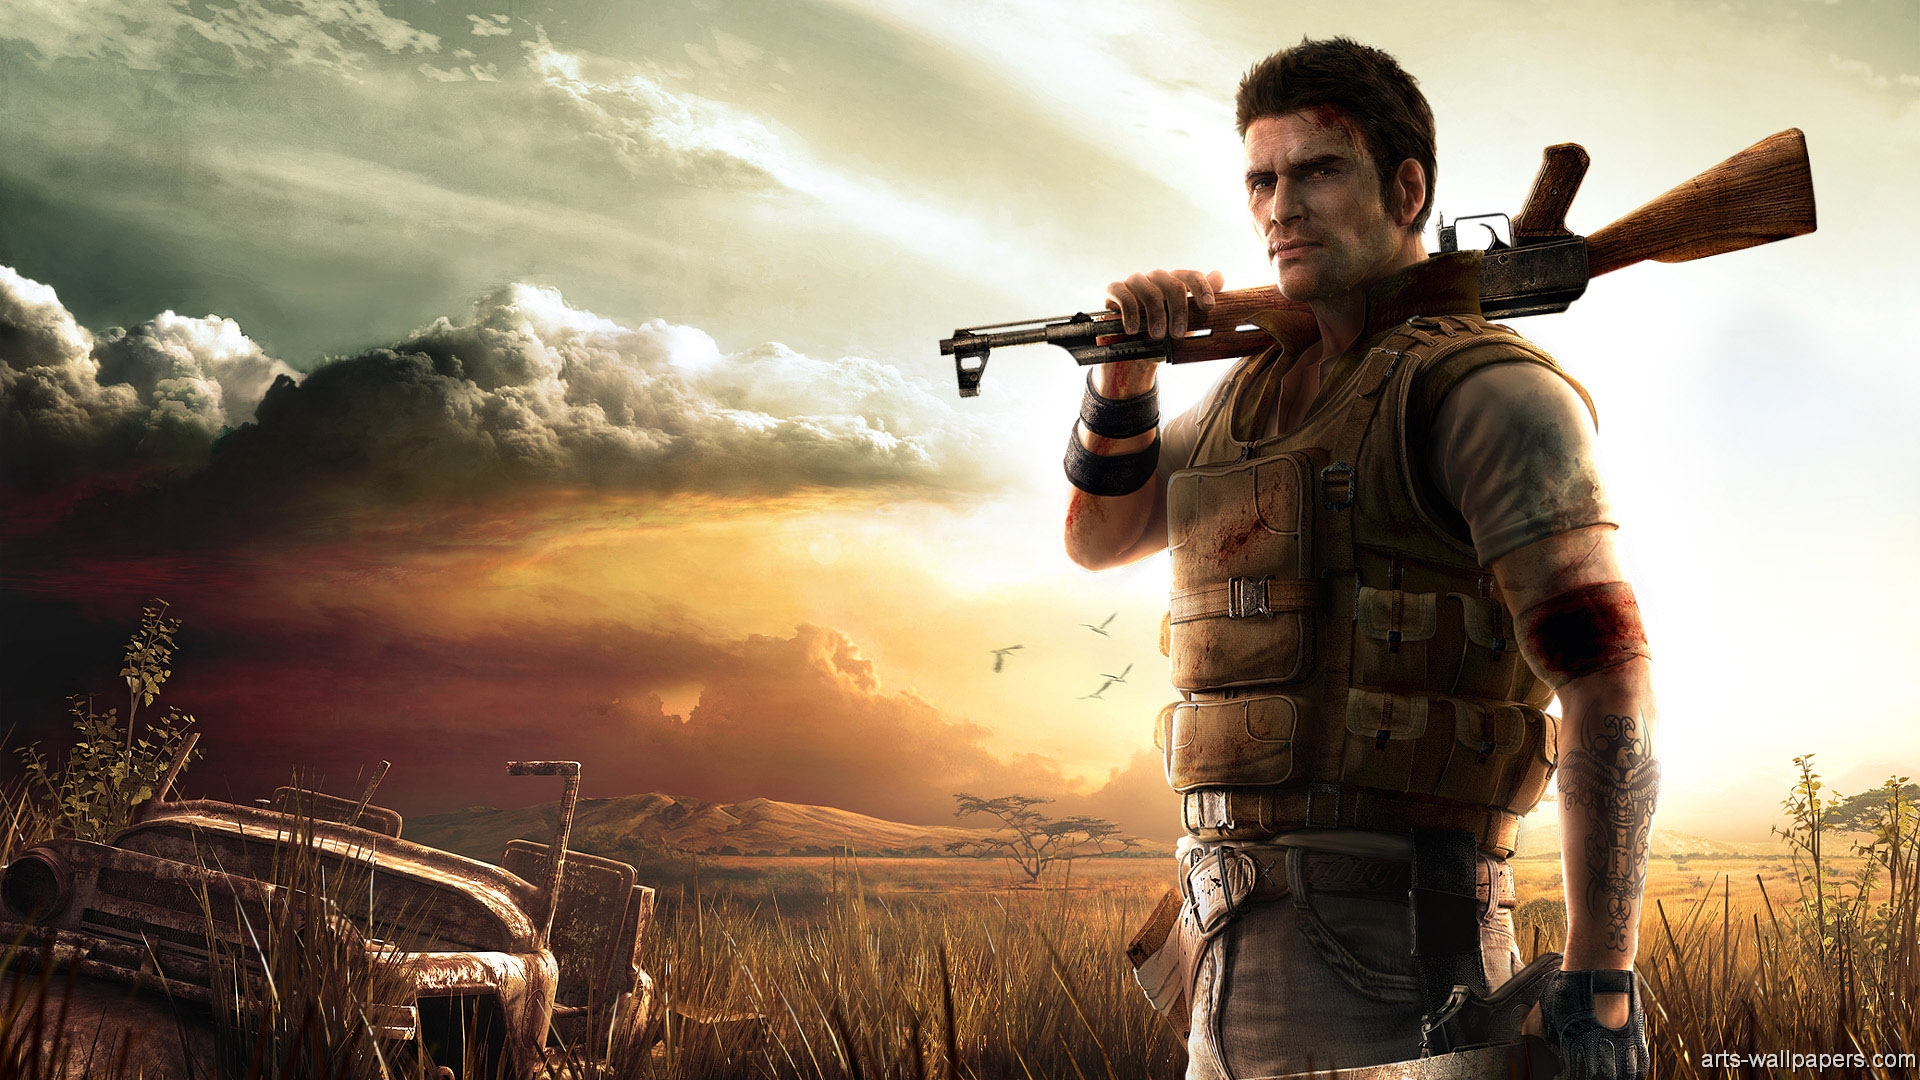 xbox video game cool wallpapers high definition desktop imagesjpg 1920x1080